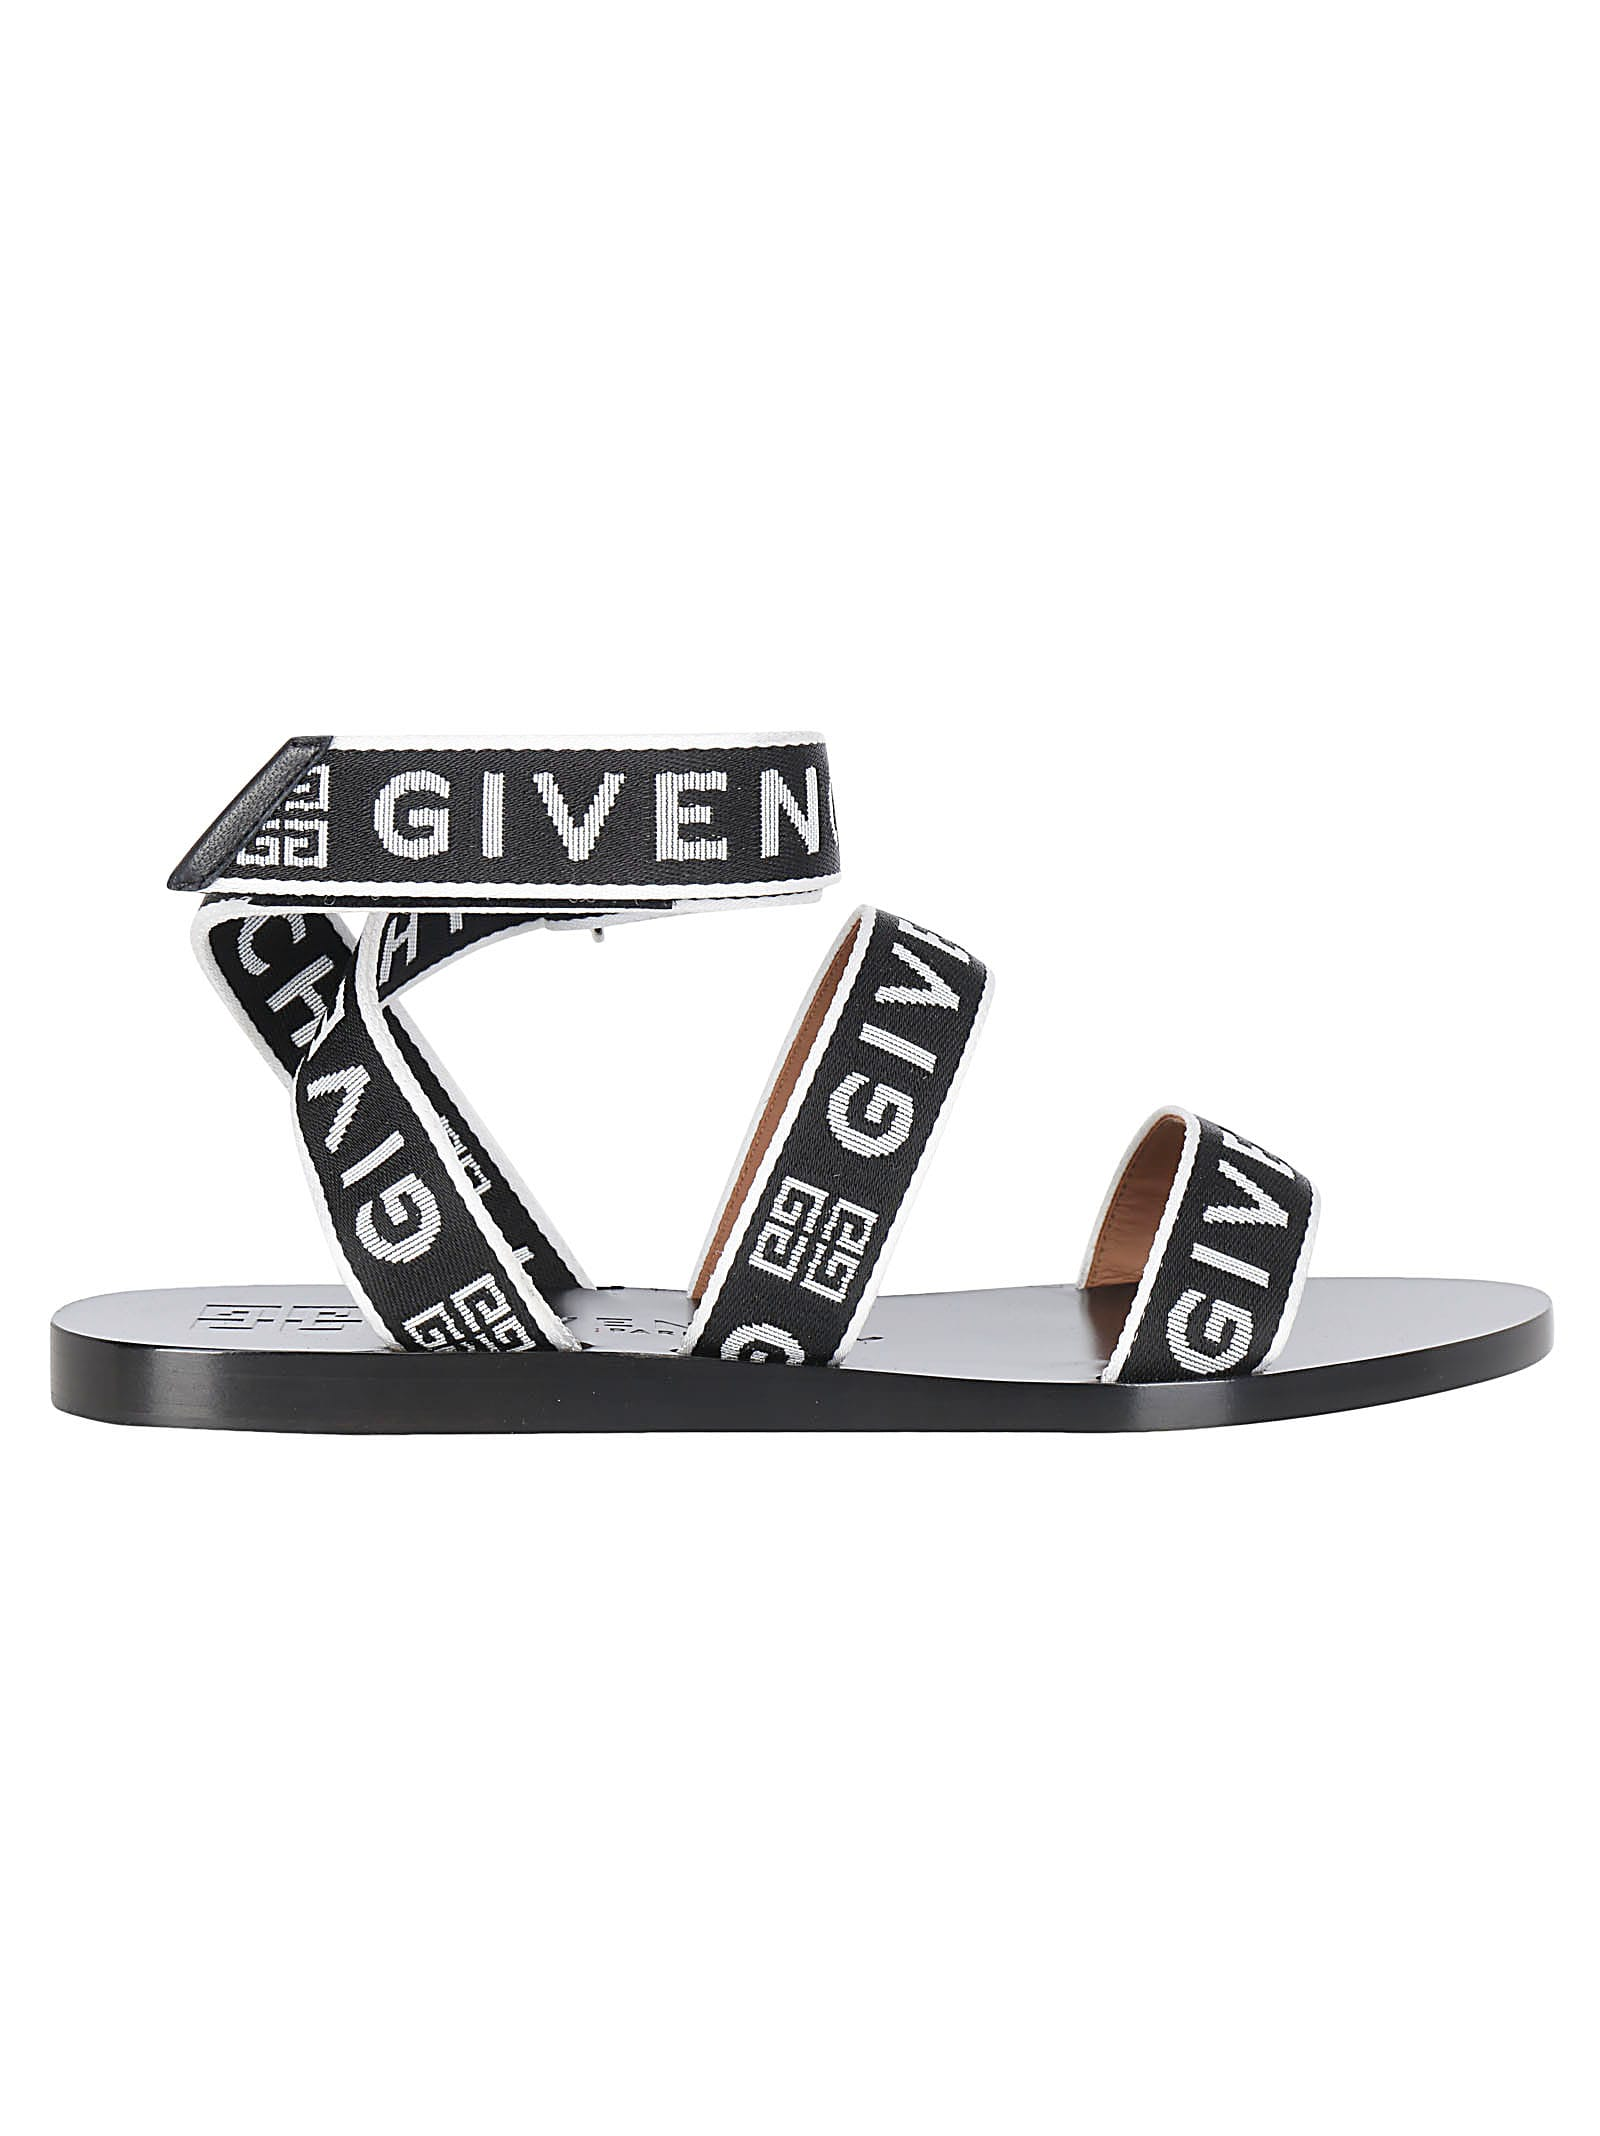 Givenchy Givenchy Sandals - Black/white